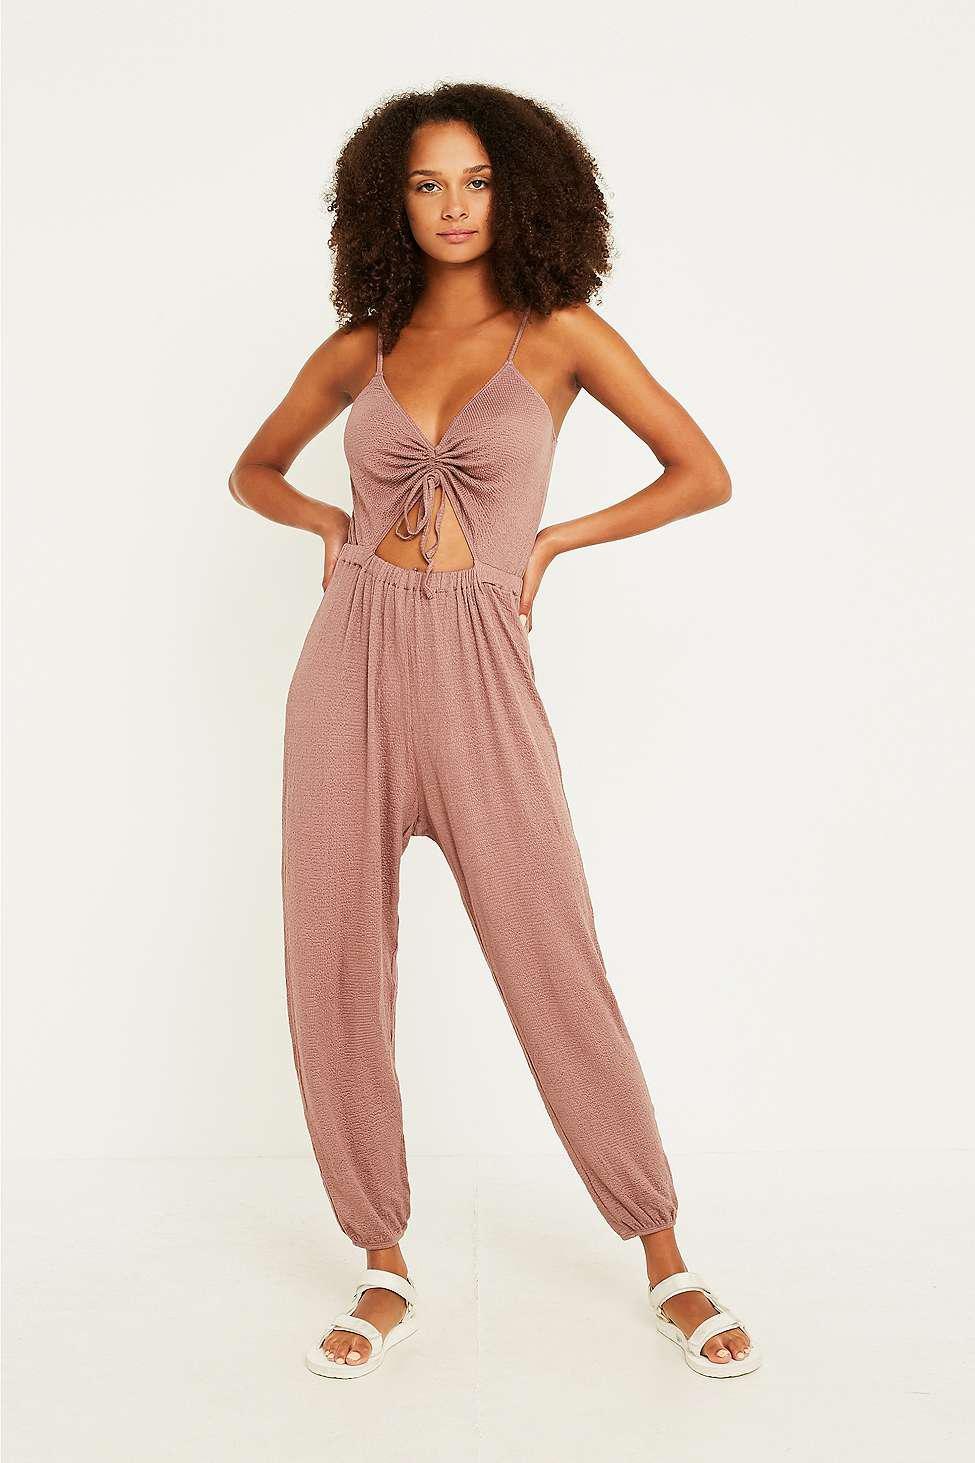 67a3c4bd0429 Out From Under Elsie Cinched Cutout Jumpsuit - Womens Xs in Brown - Lyst